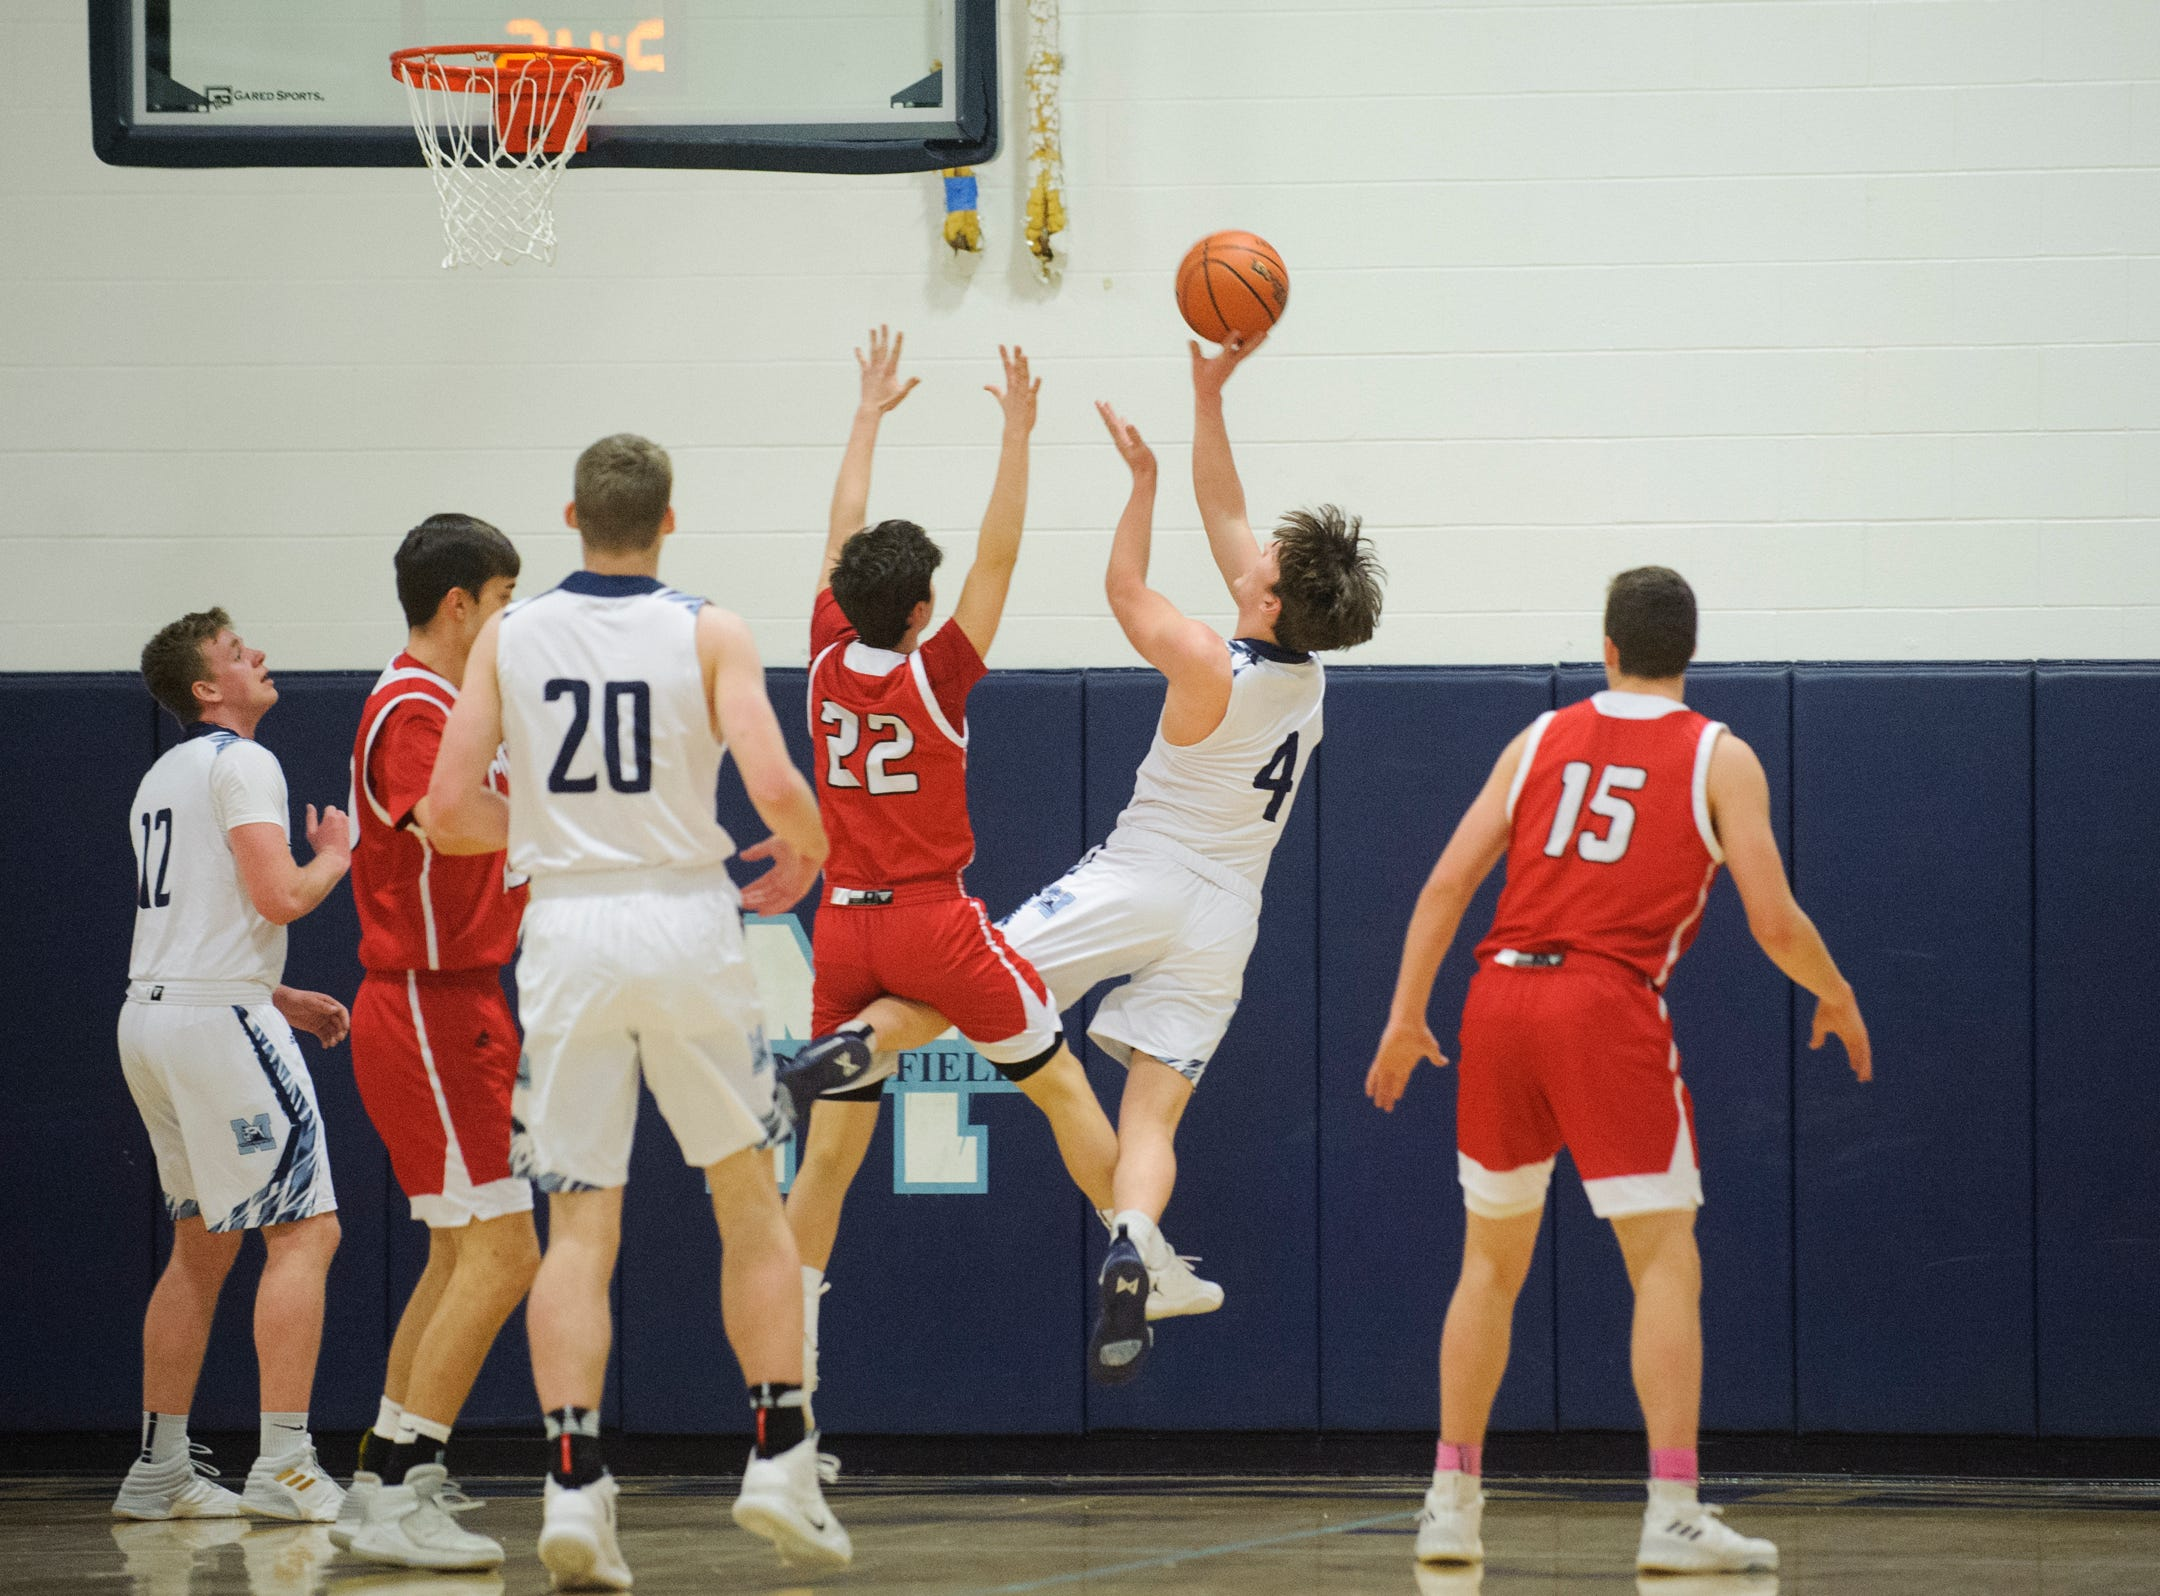 MMU's Harrison Leombruno-Nicholson (4) leaps for a lay up over CVU's Jacob Boliba (22) during the boys basketball game between the Champlain Valley Union Redhawks and the Mount Mansfield Cougars at MMU High School on Tuesday night January 22, 2019 in Jericho.